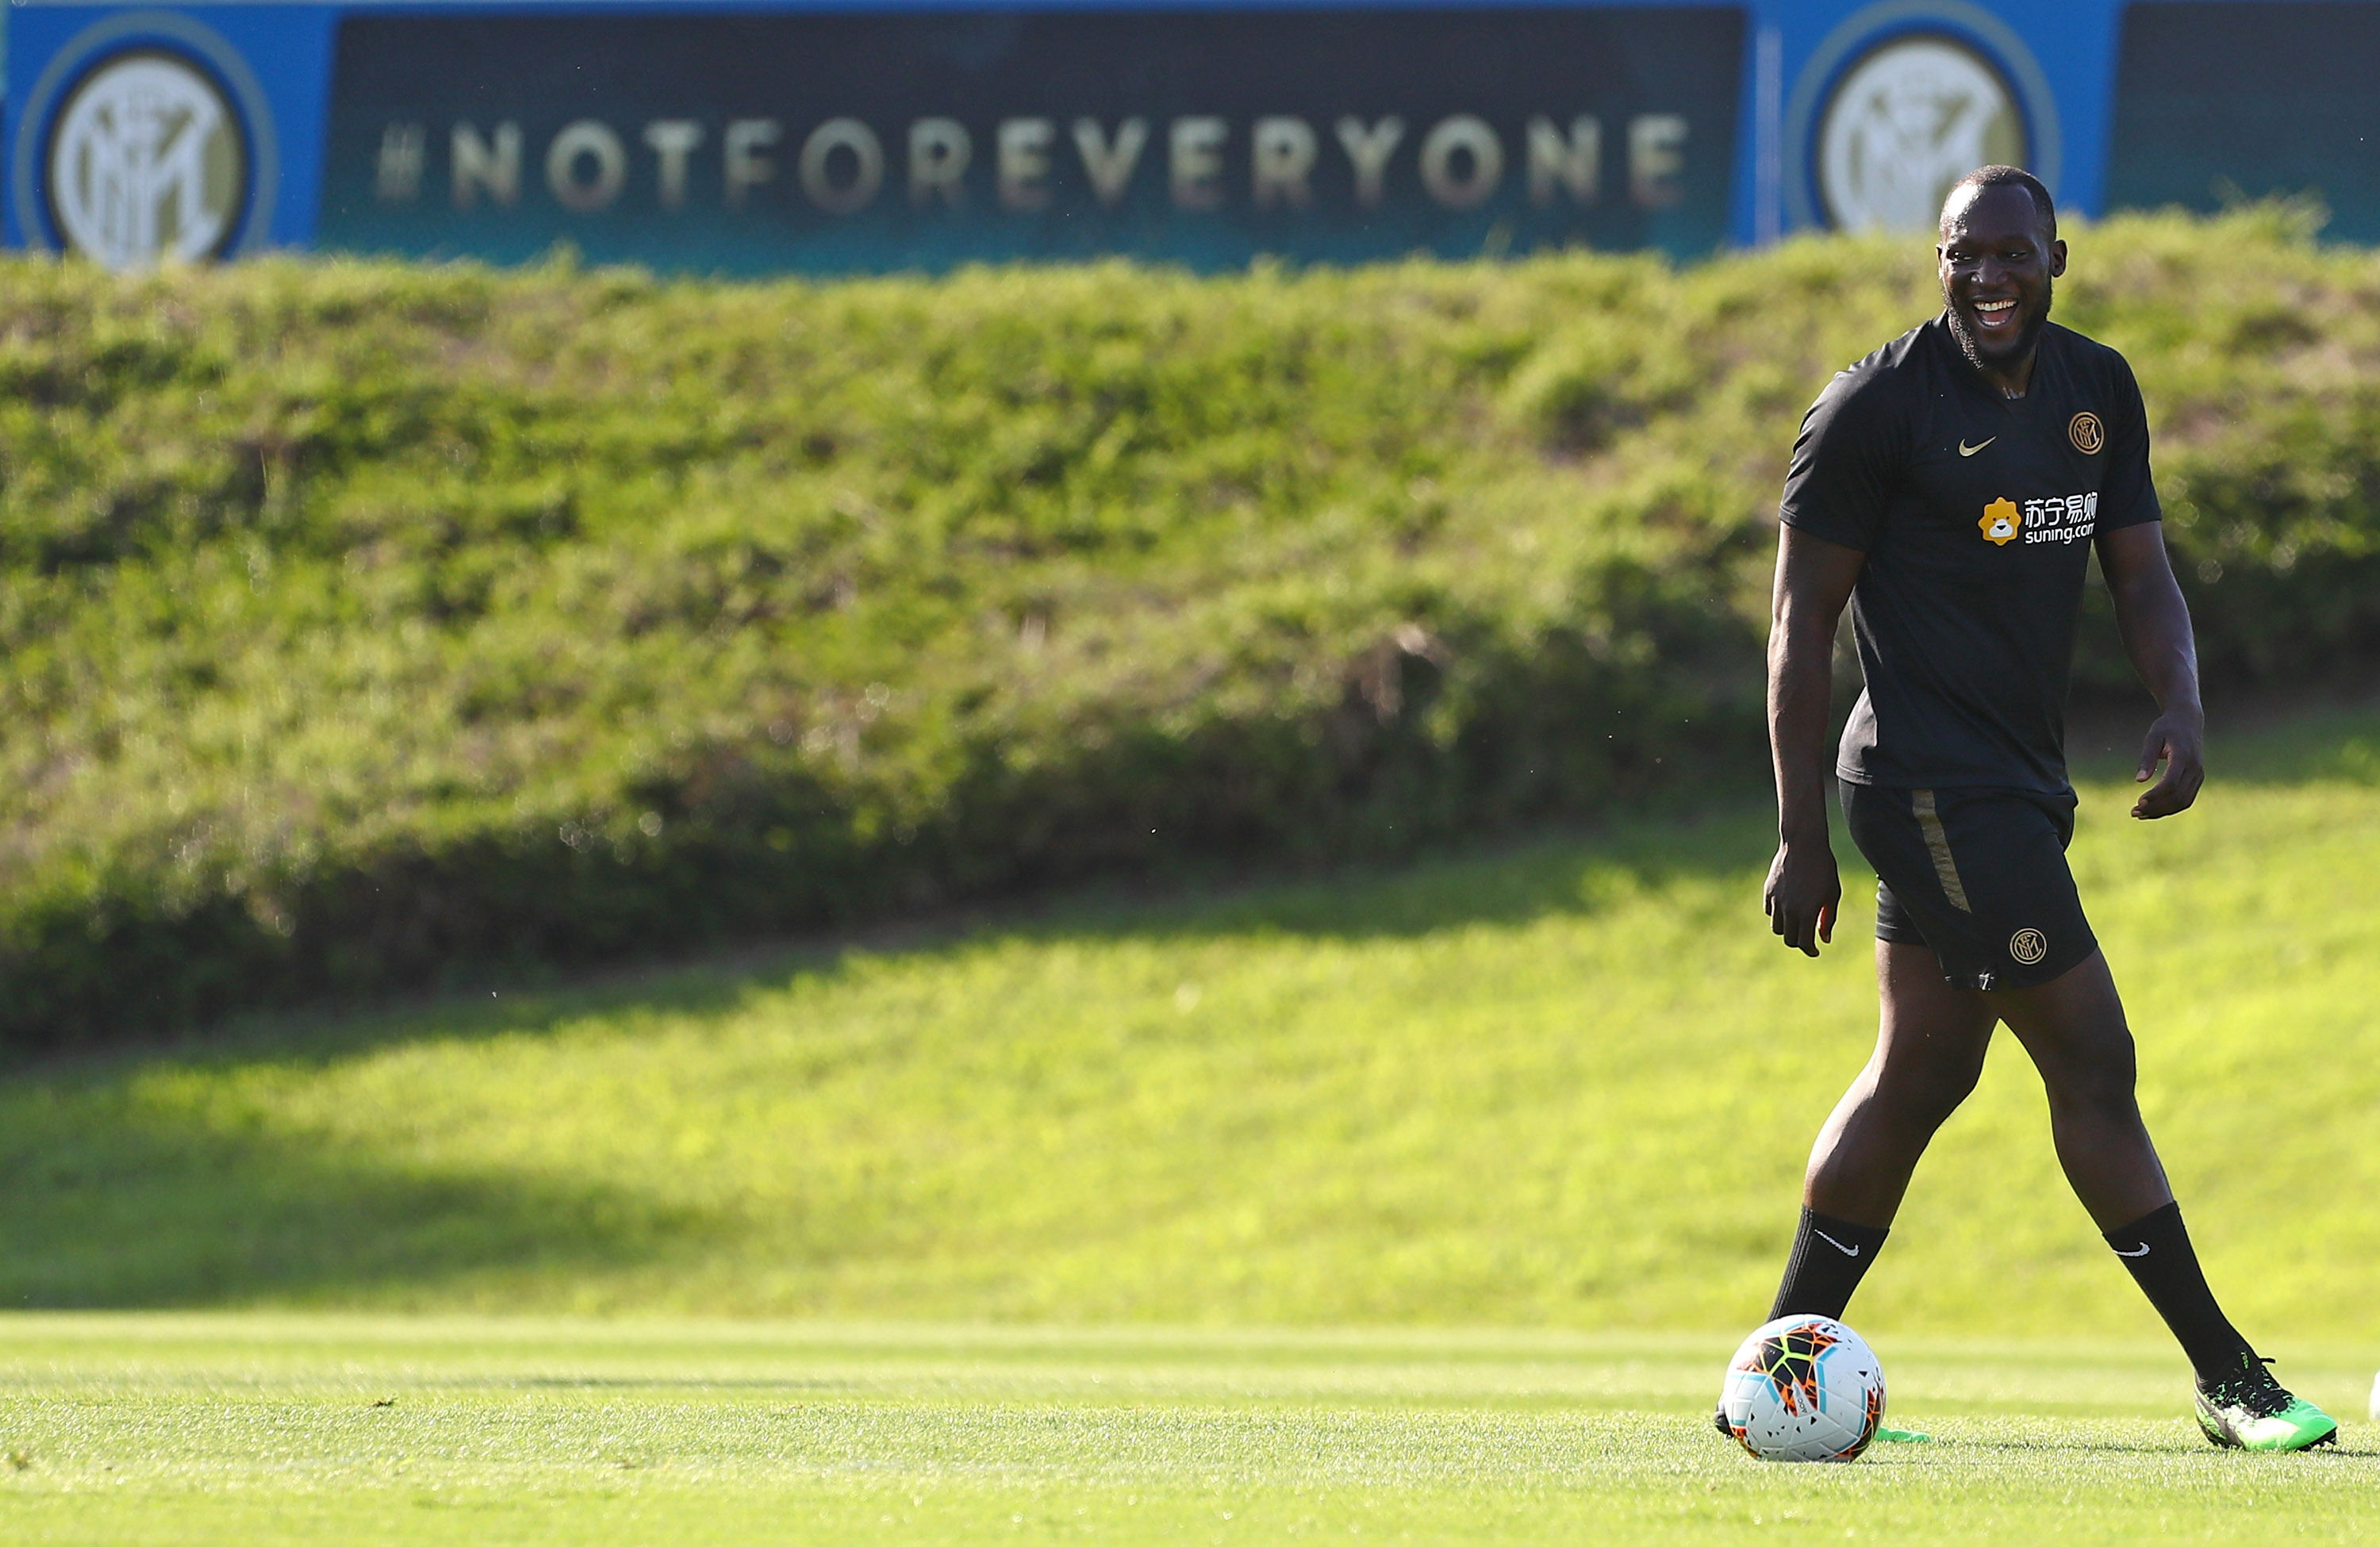 Romelu Lukaku at Inter, the first photos